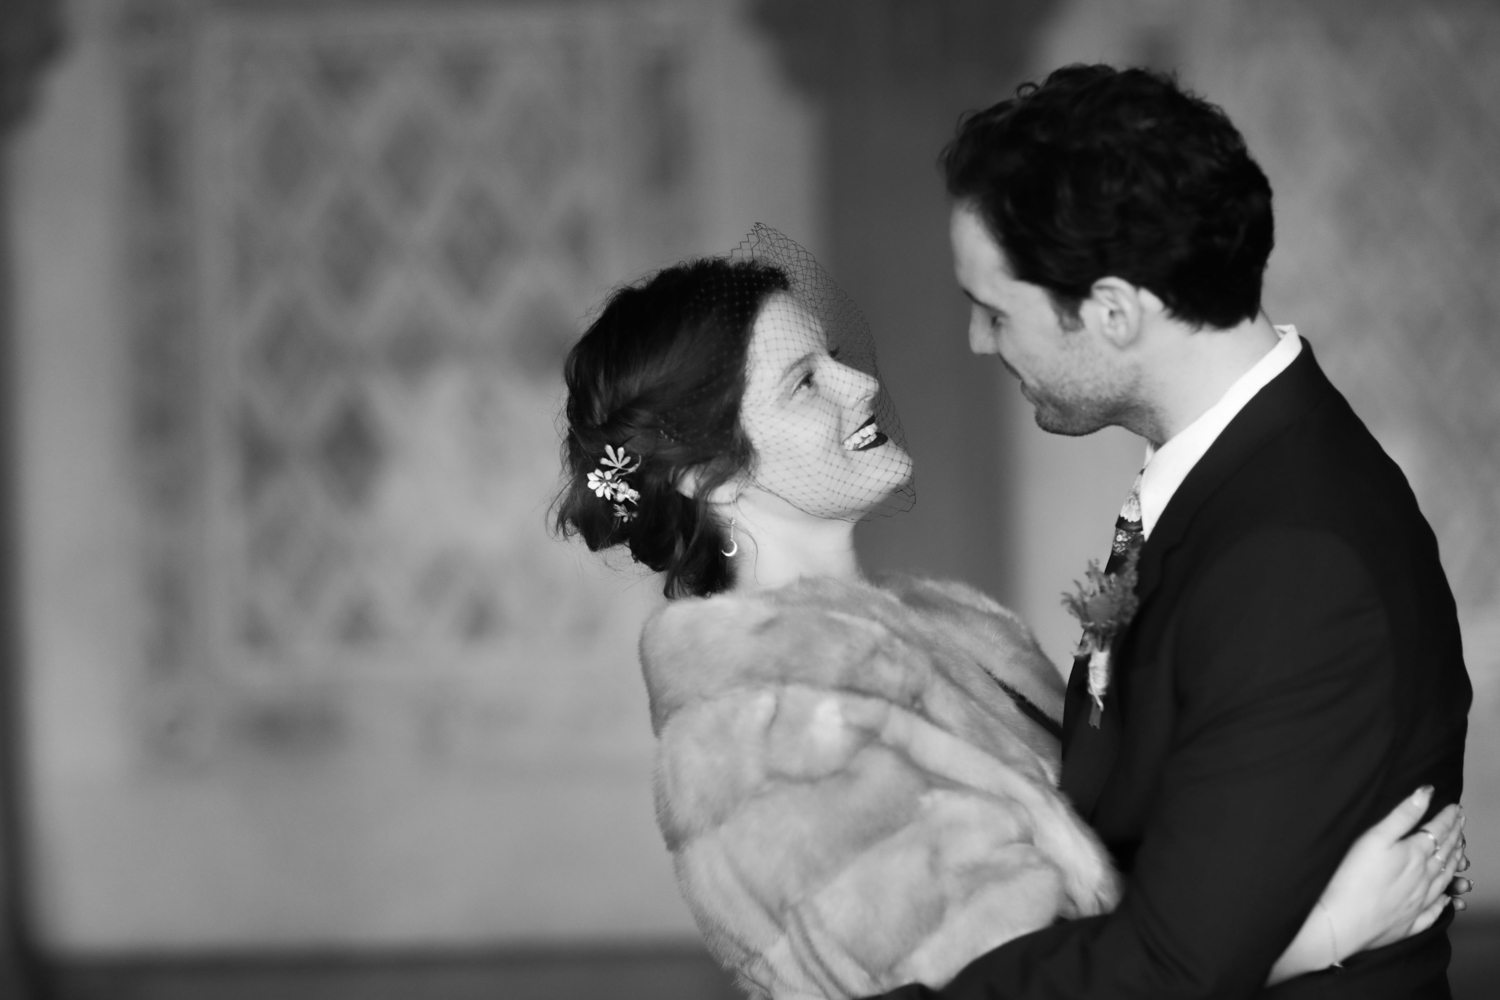 Black and white portrait of the bride and groom dancing on their wedding day.